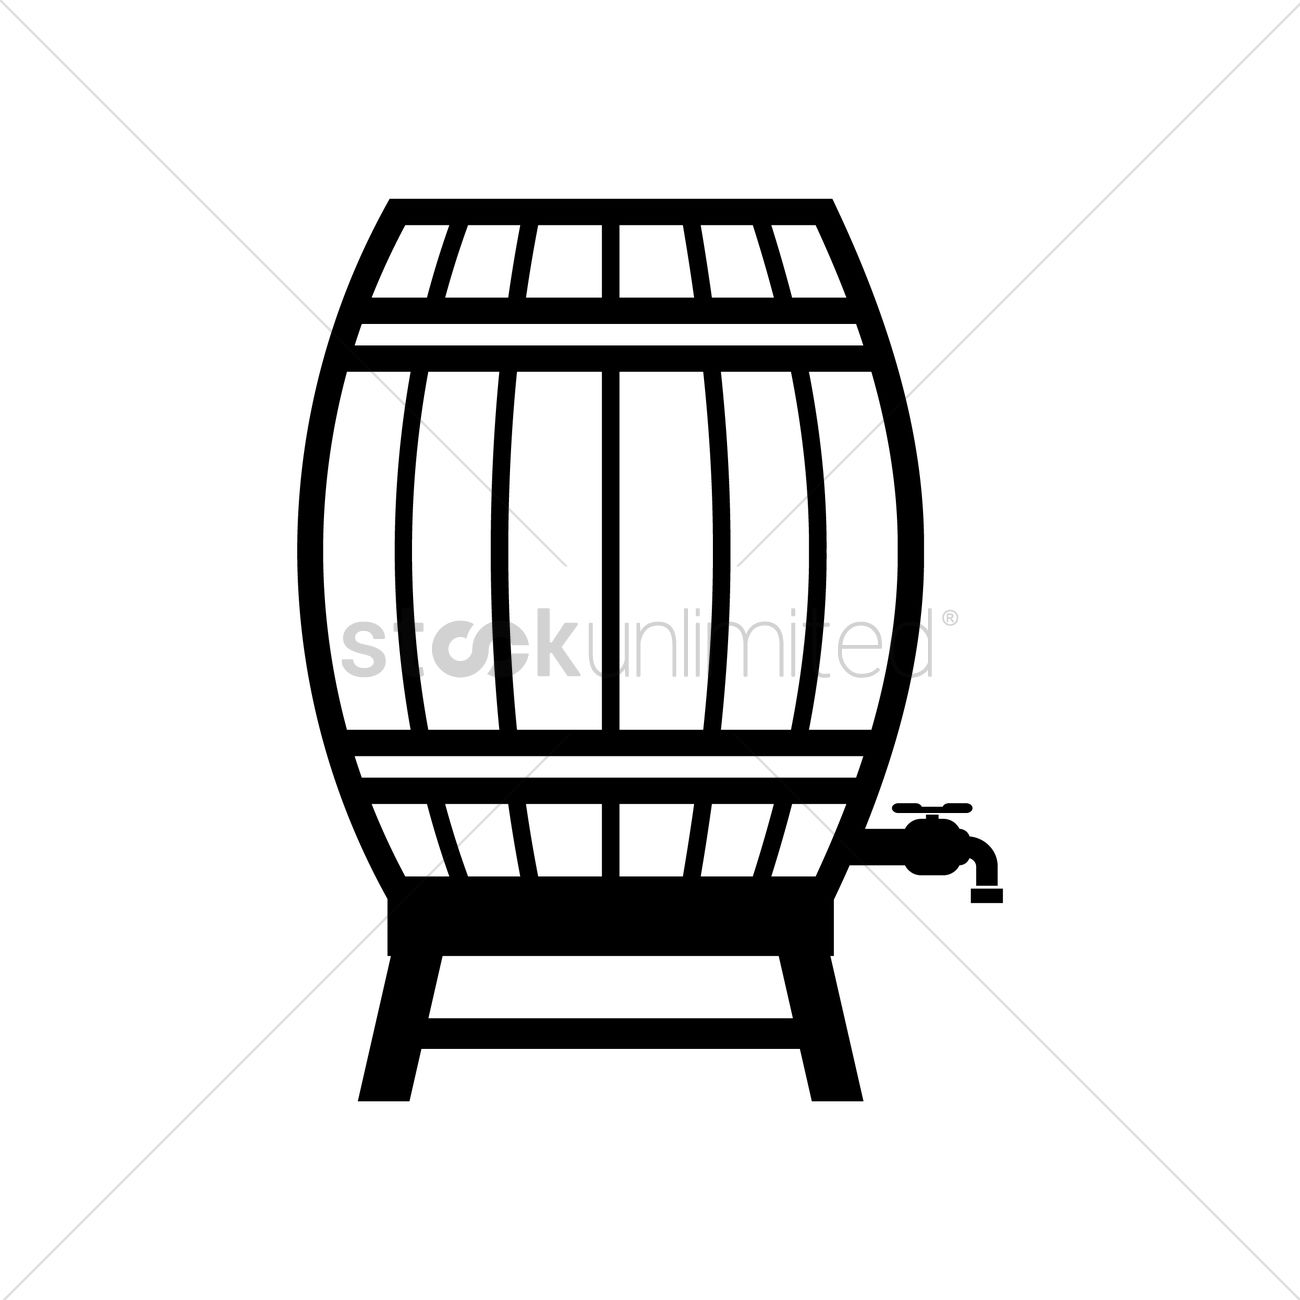 Wooden barrel with faucet Vector Image - 1493791 | StockUnlimited